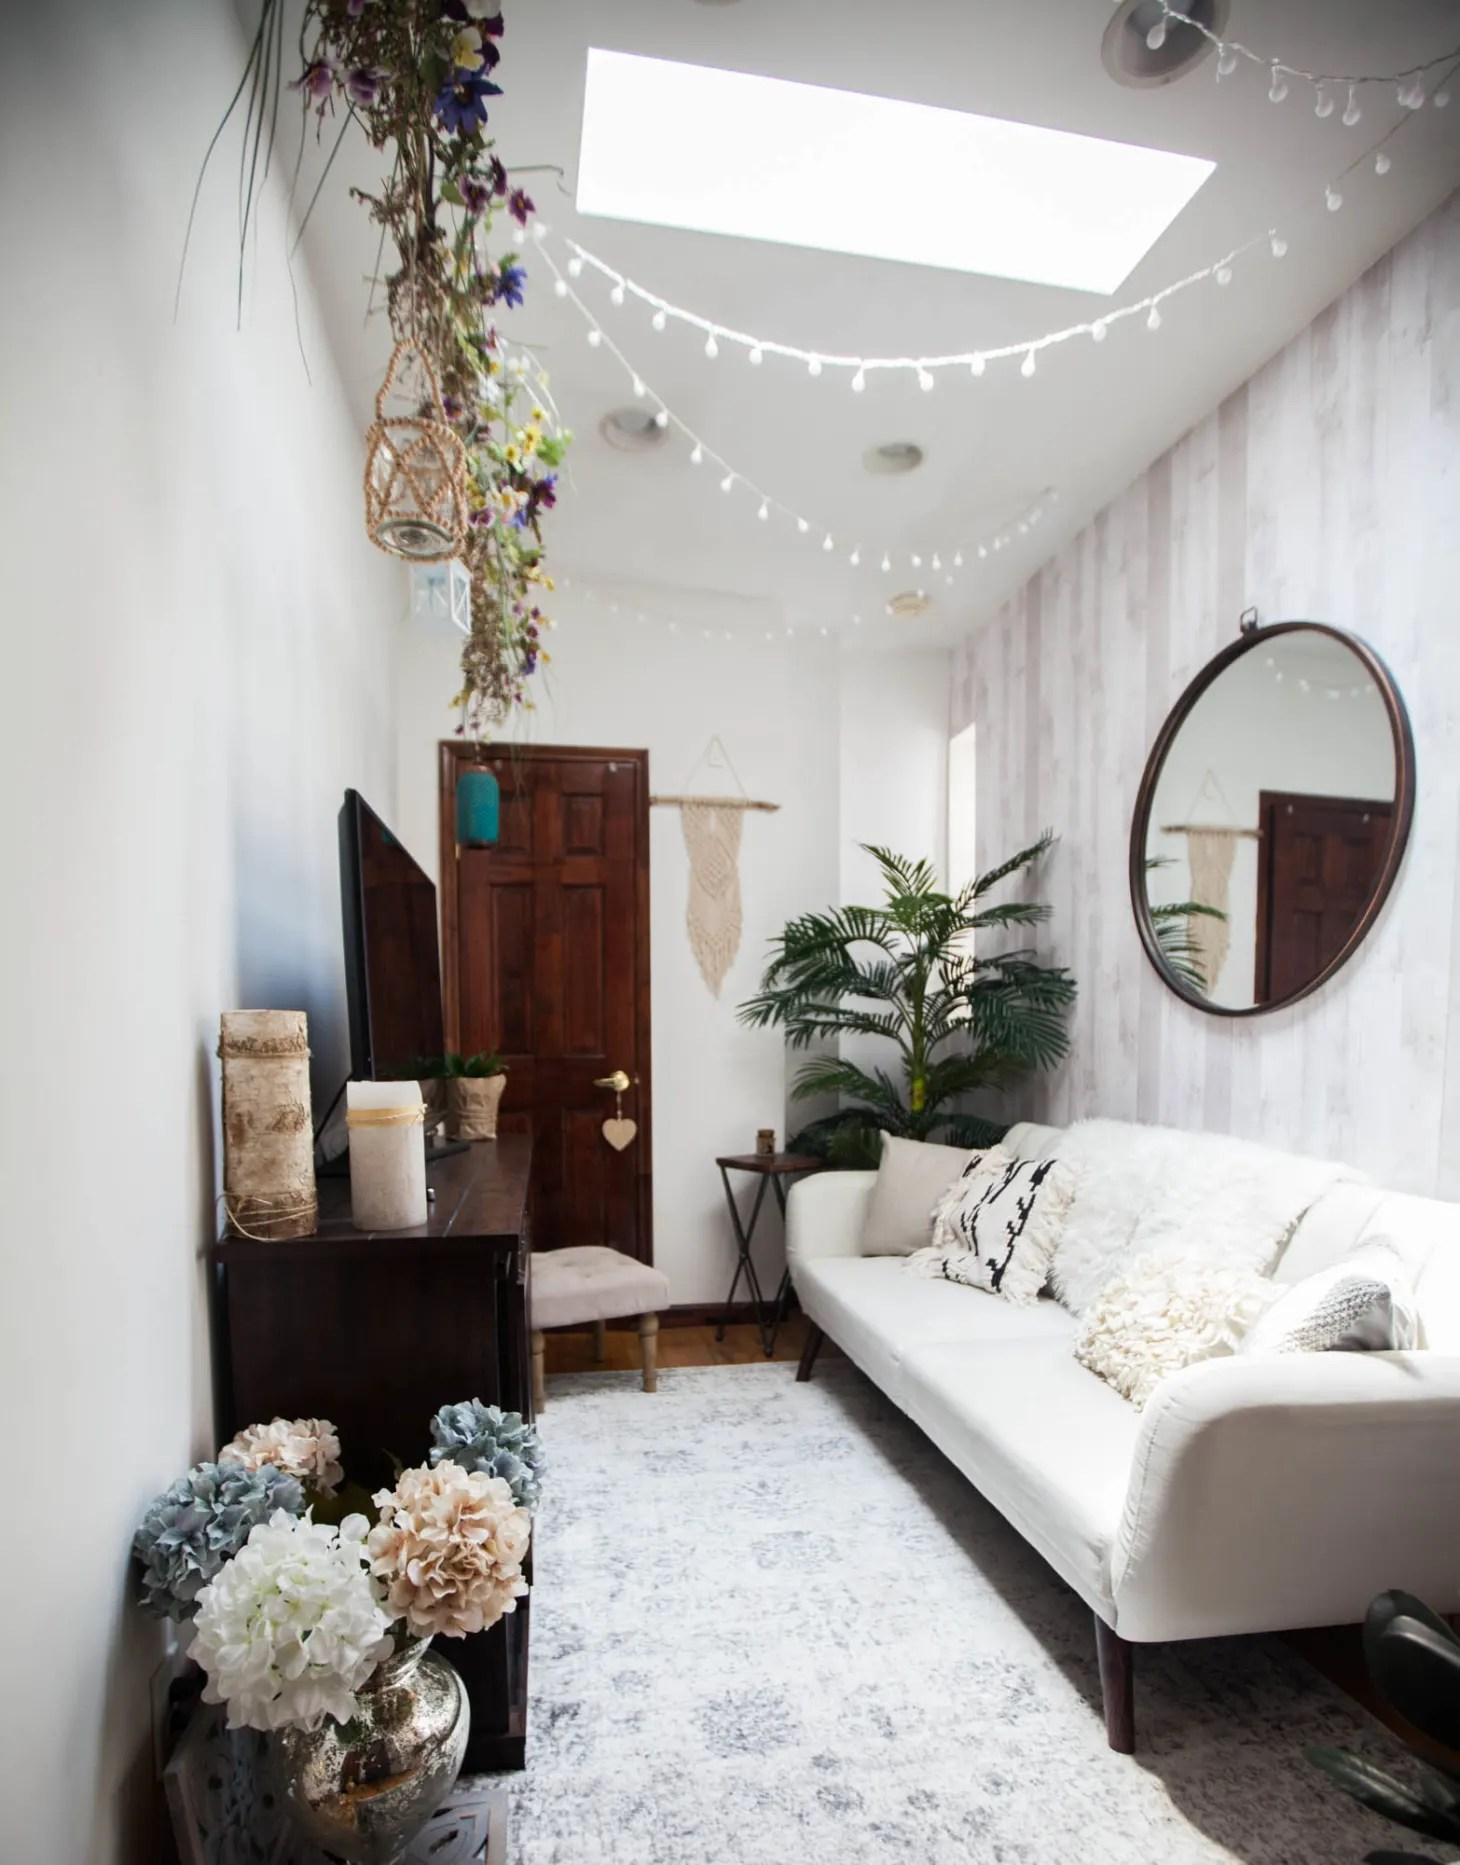 30 Small Living Room Decorating & Design Ideas - How to ... on Small Room Decoration  id=35622